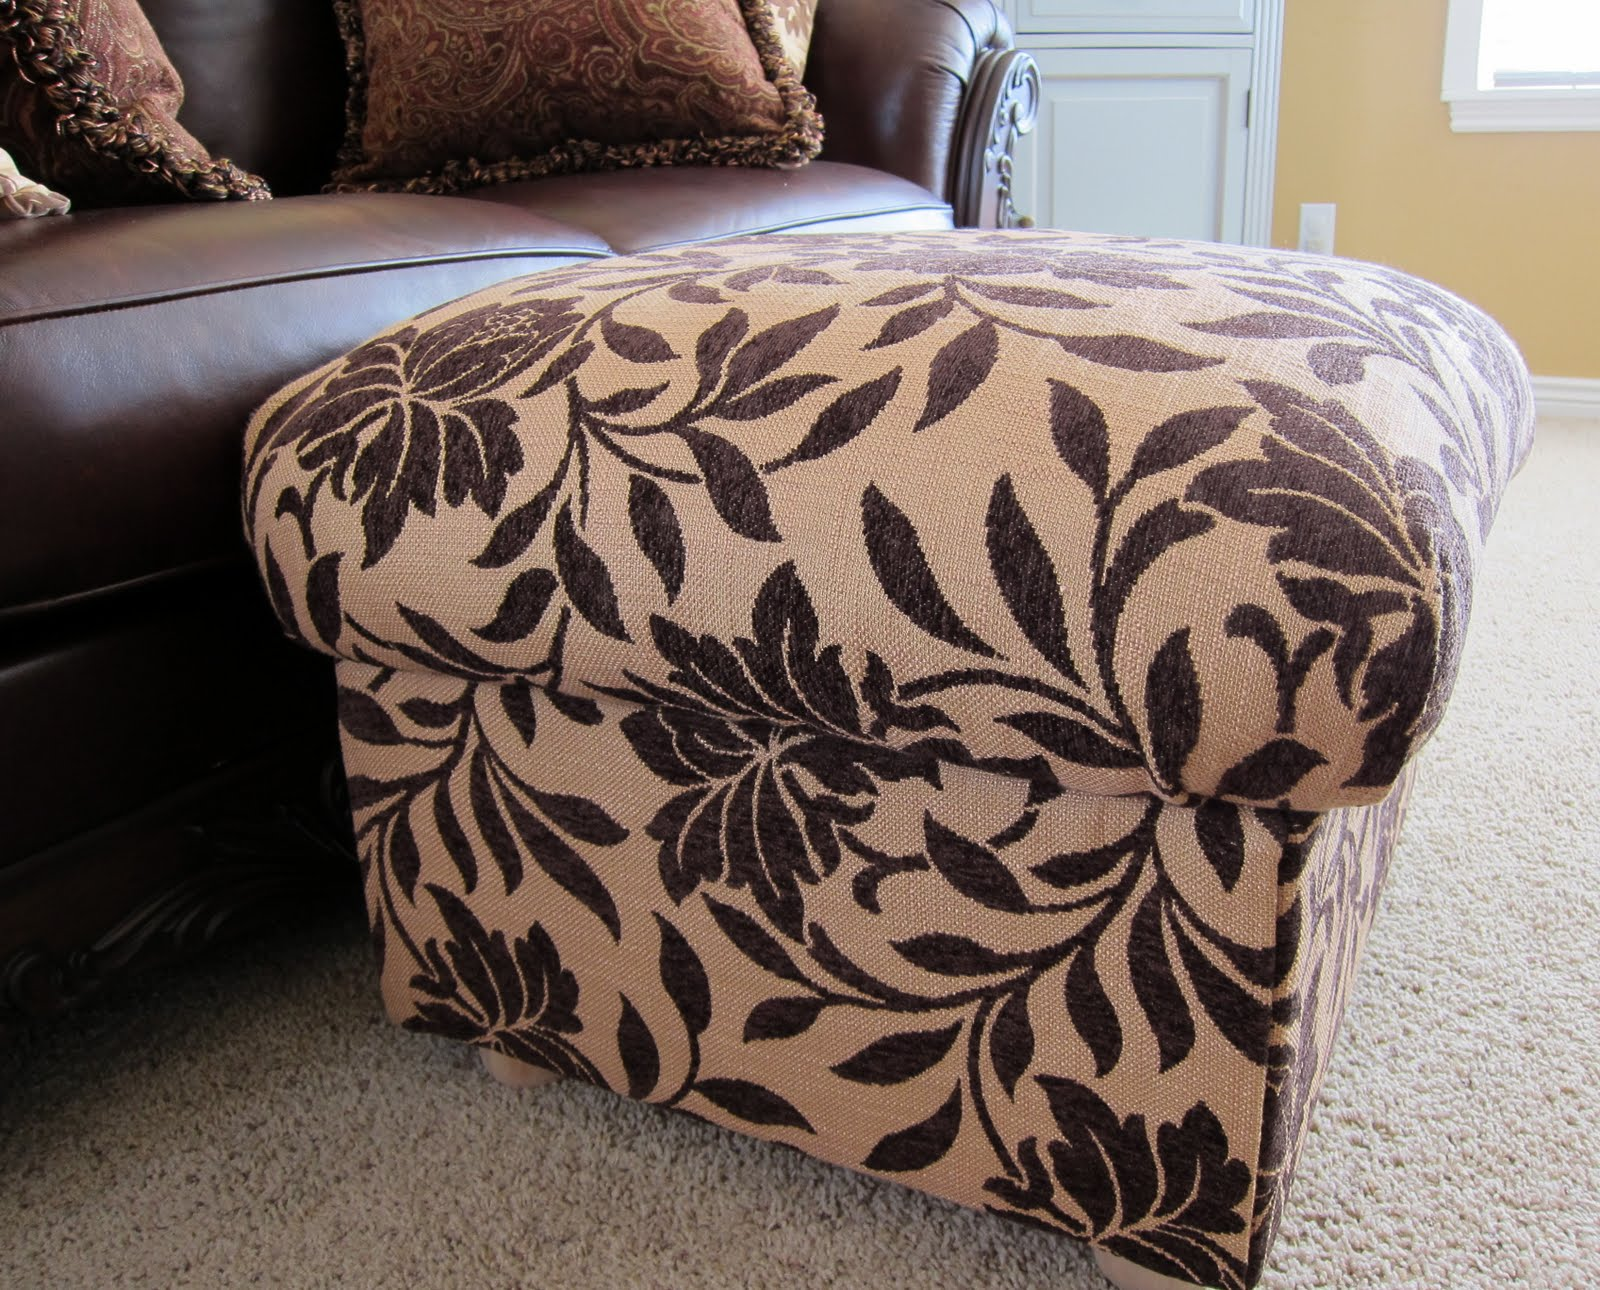 Do it yourself divas diy ottoman build your own from scratch solutioingenieria Image collections